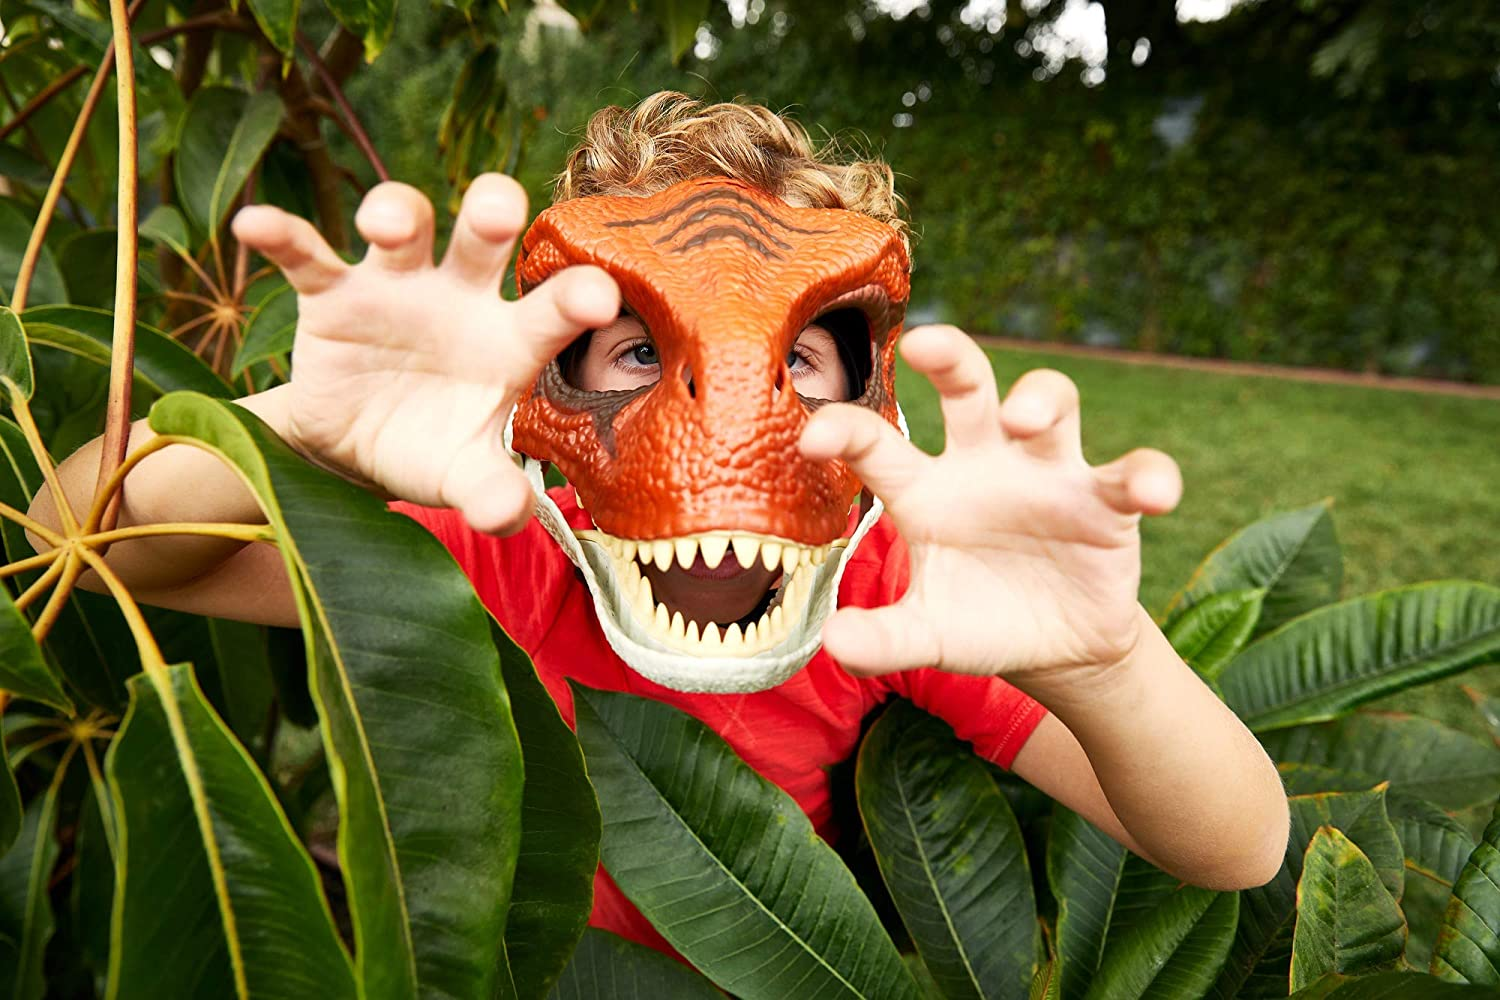 Color : Red KODH Nuova Simulazione Dinosaur Mask Modello Halloween Tidy Toy Cos Animal Dress Mask Puzzle Toy Parrucca Divertente